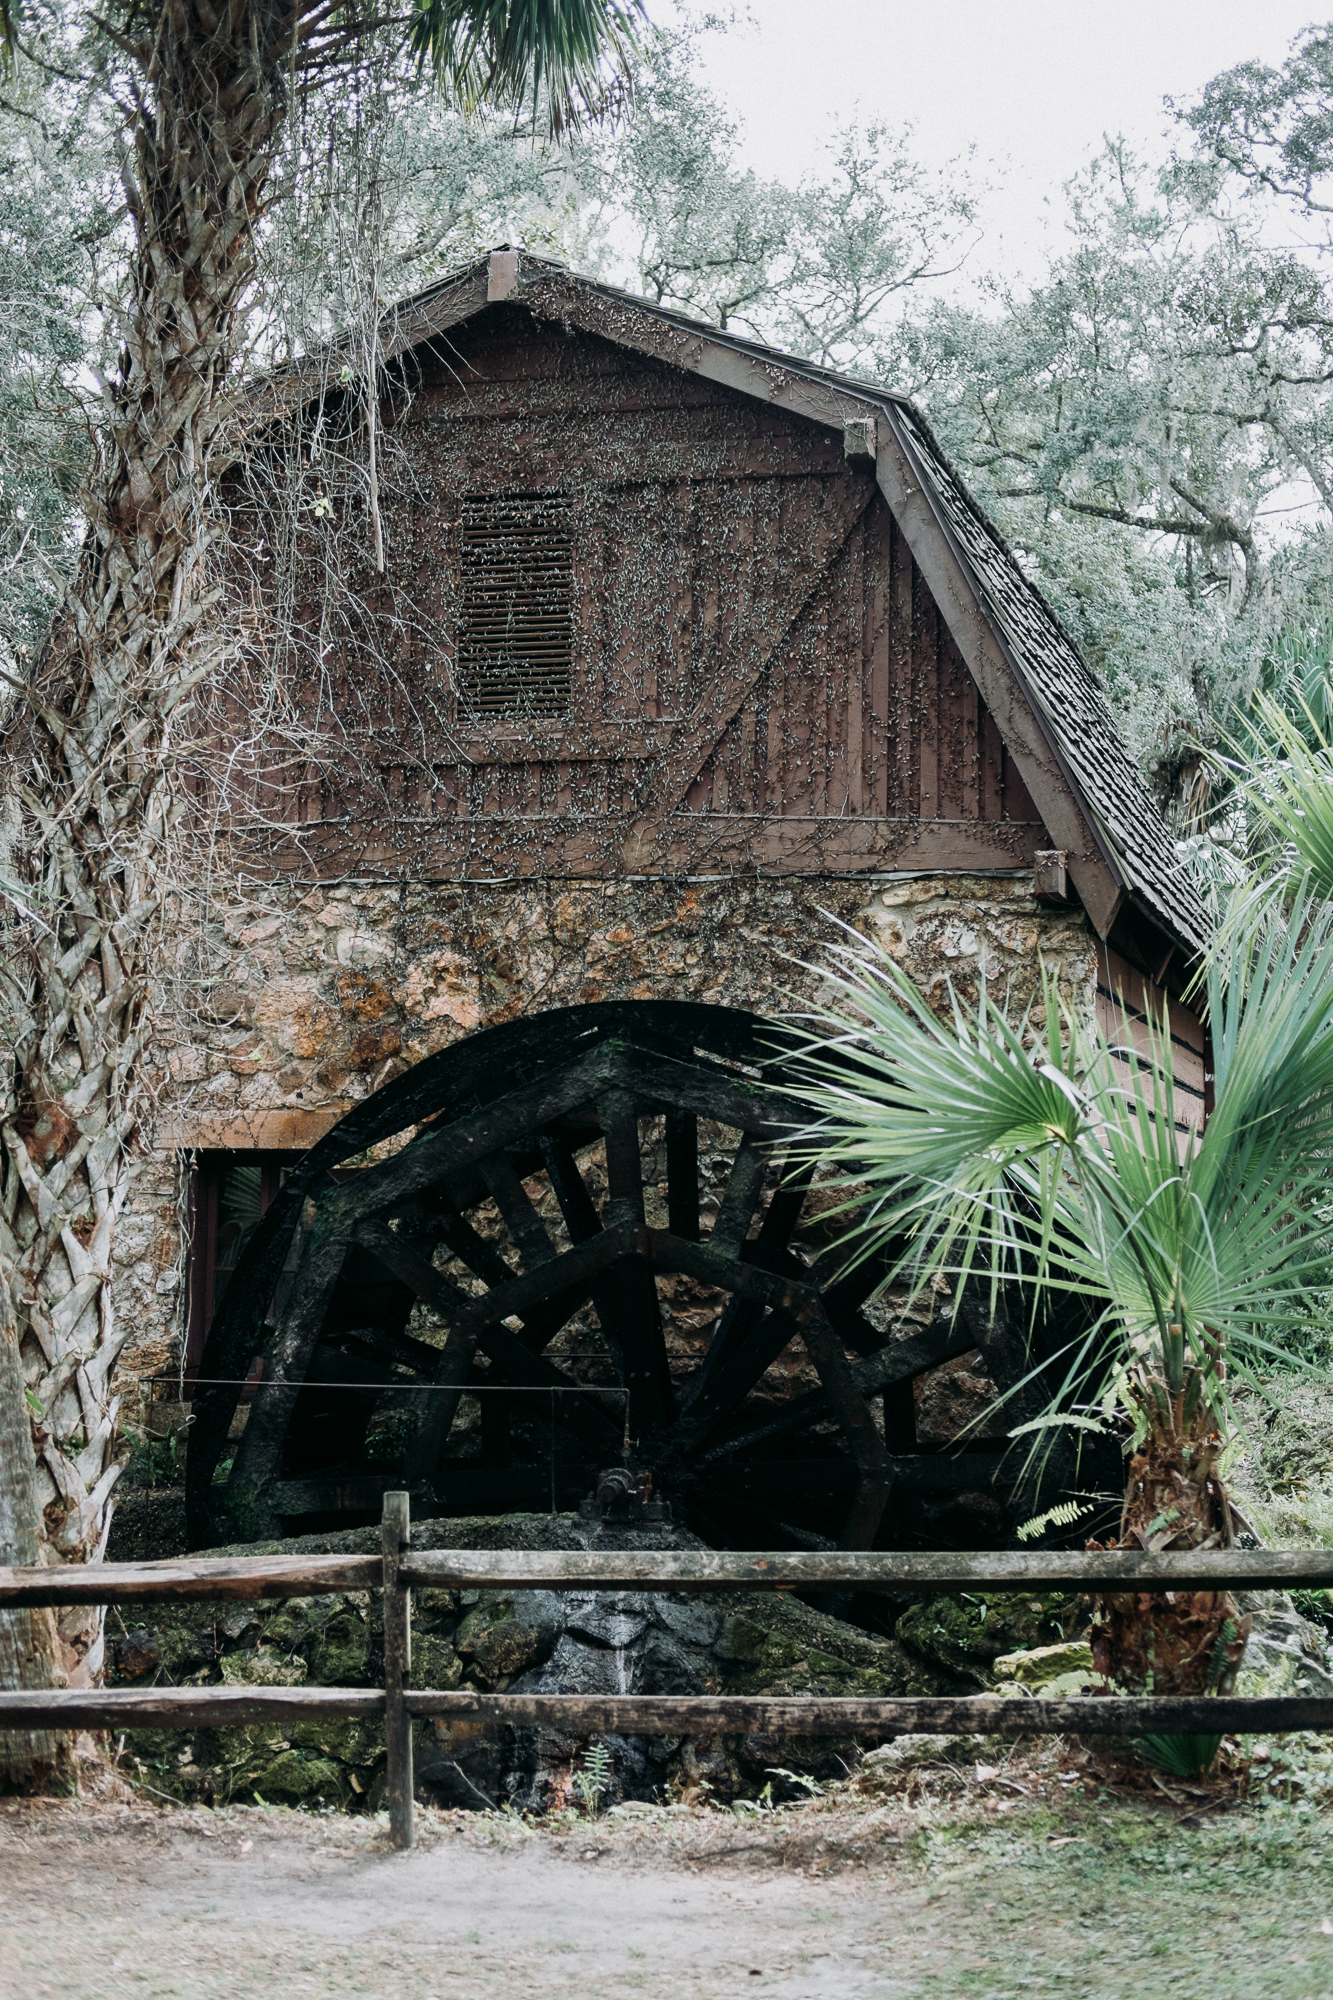 From-Coast-to-Coast-Camping-Juniper-Springs-ocala-national-forest-26-2655.jpg